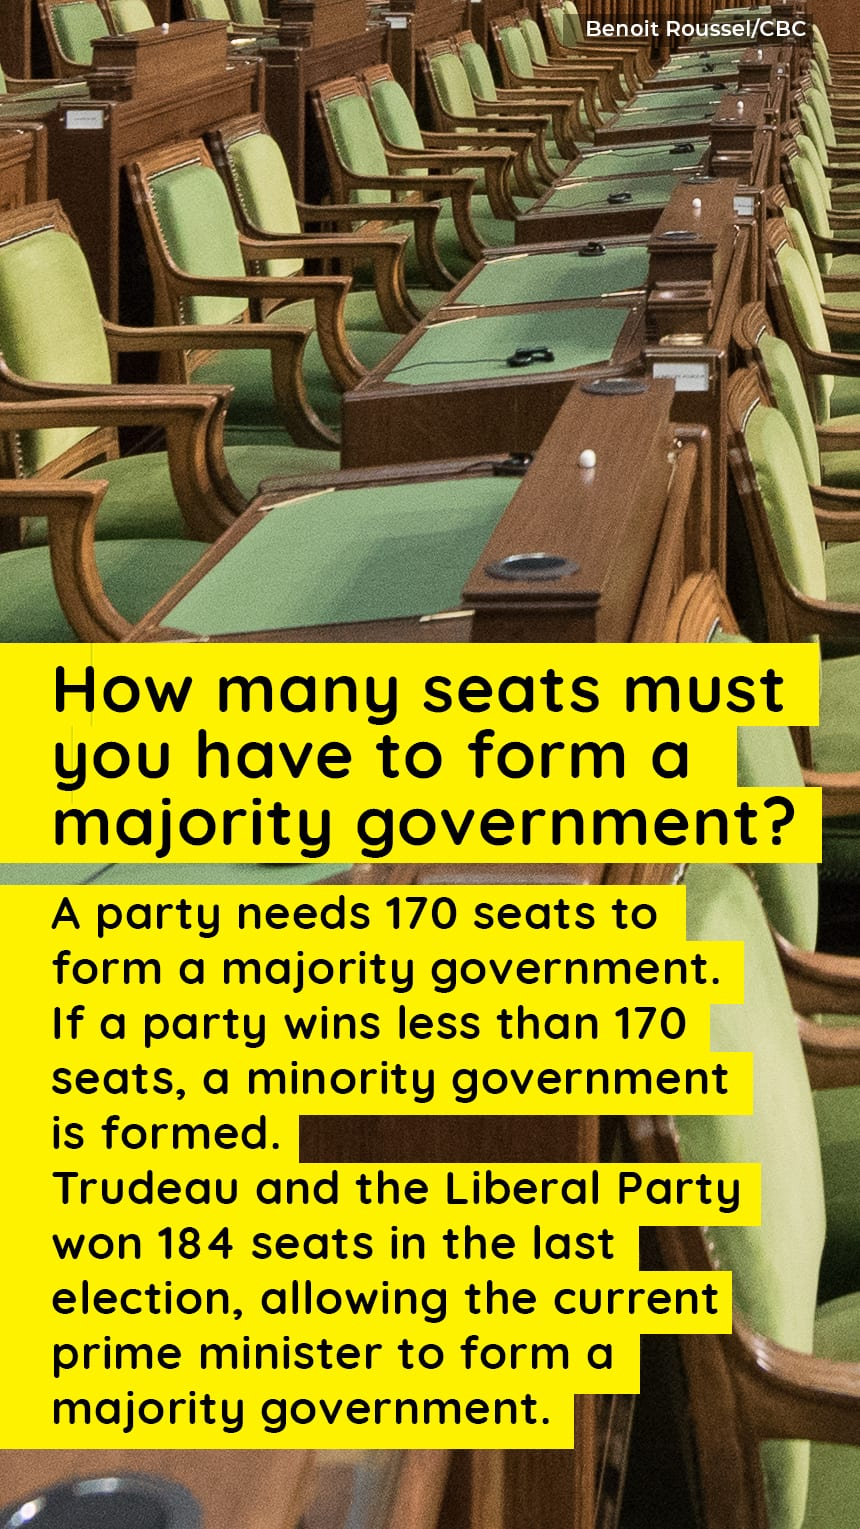 An image of seats in the House of Commons with text that says, TEXT: How many seats must you have to form a majority government? A party needs 170 seats to form a majority government. If a party wins less than 170 seats, a minority government is formed. Trudeau and the Liberal Party won 184 seats in the last election, allowing the current prime minister to form a majority government.